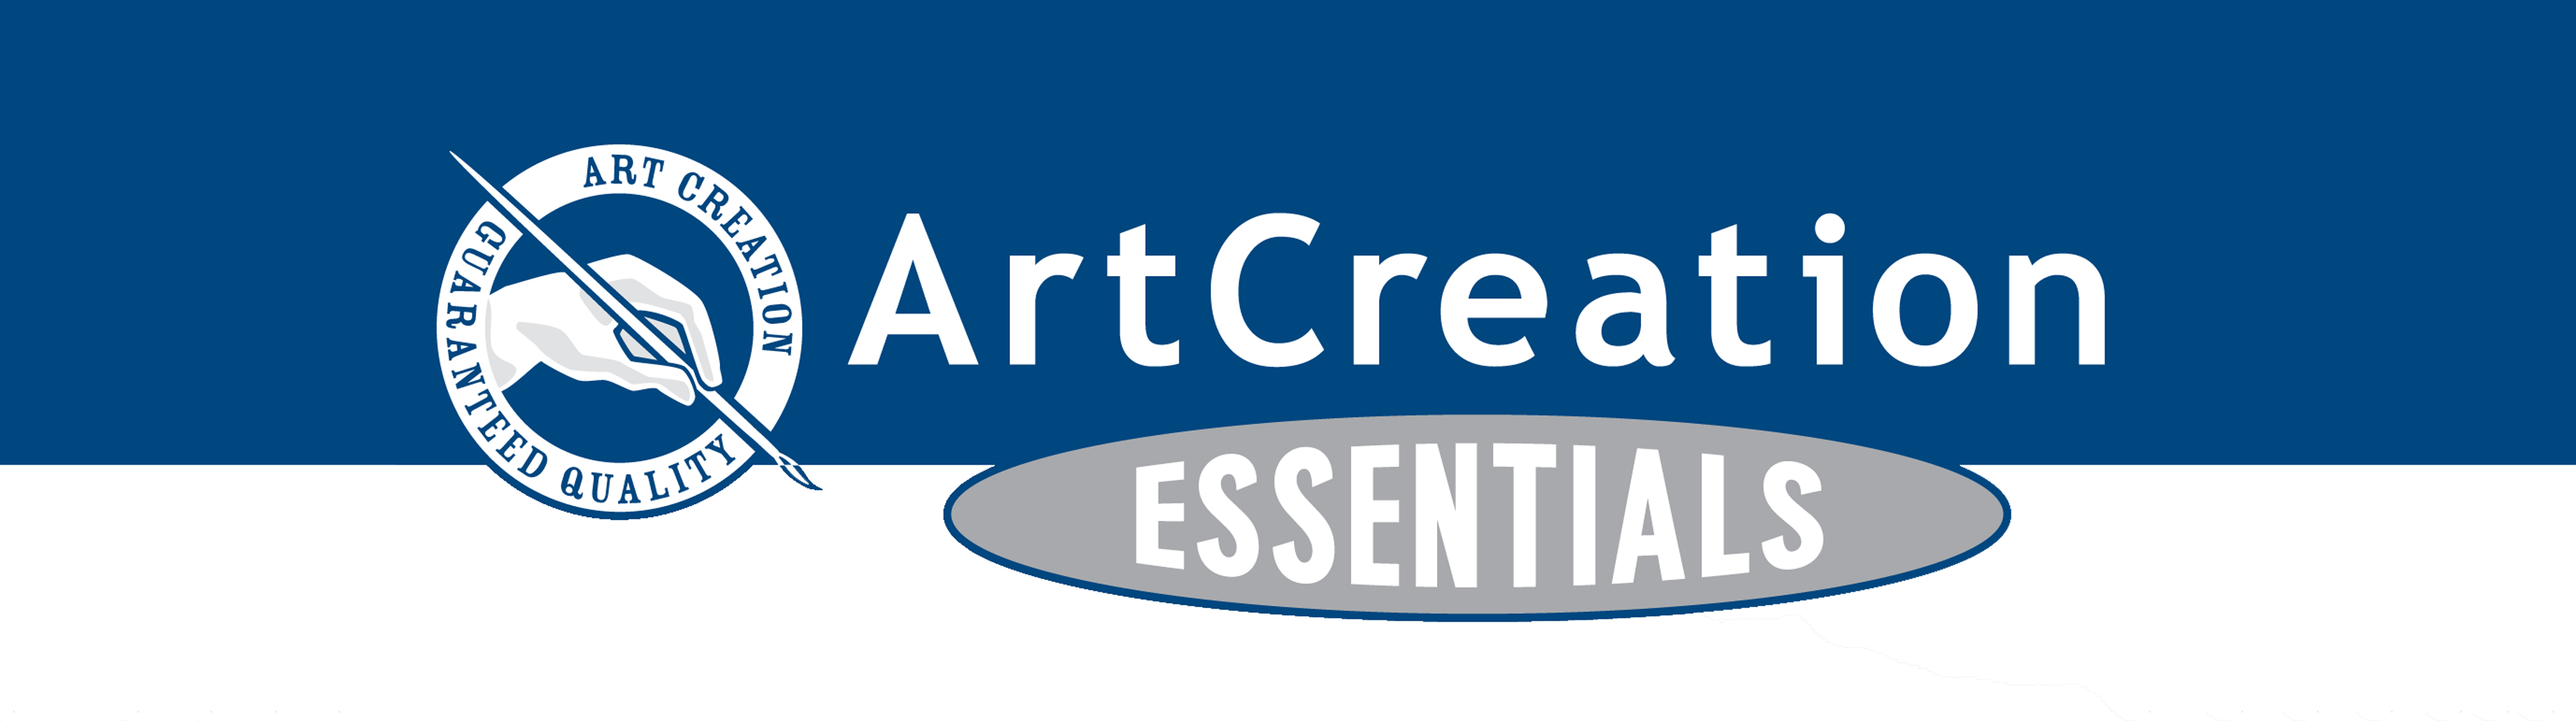 Royal Talens ArtCreation Essential